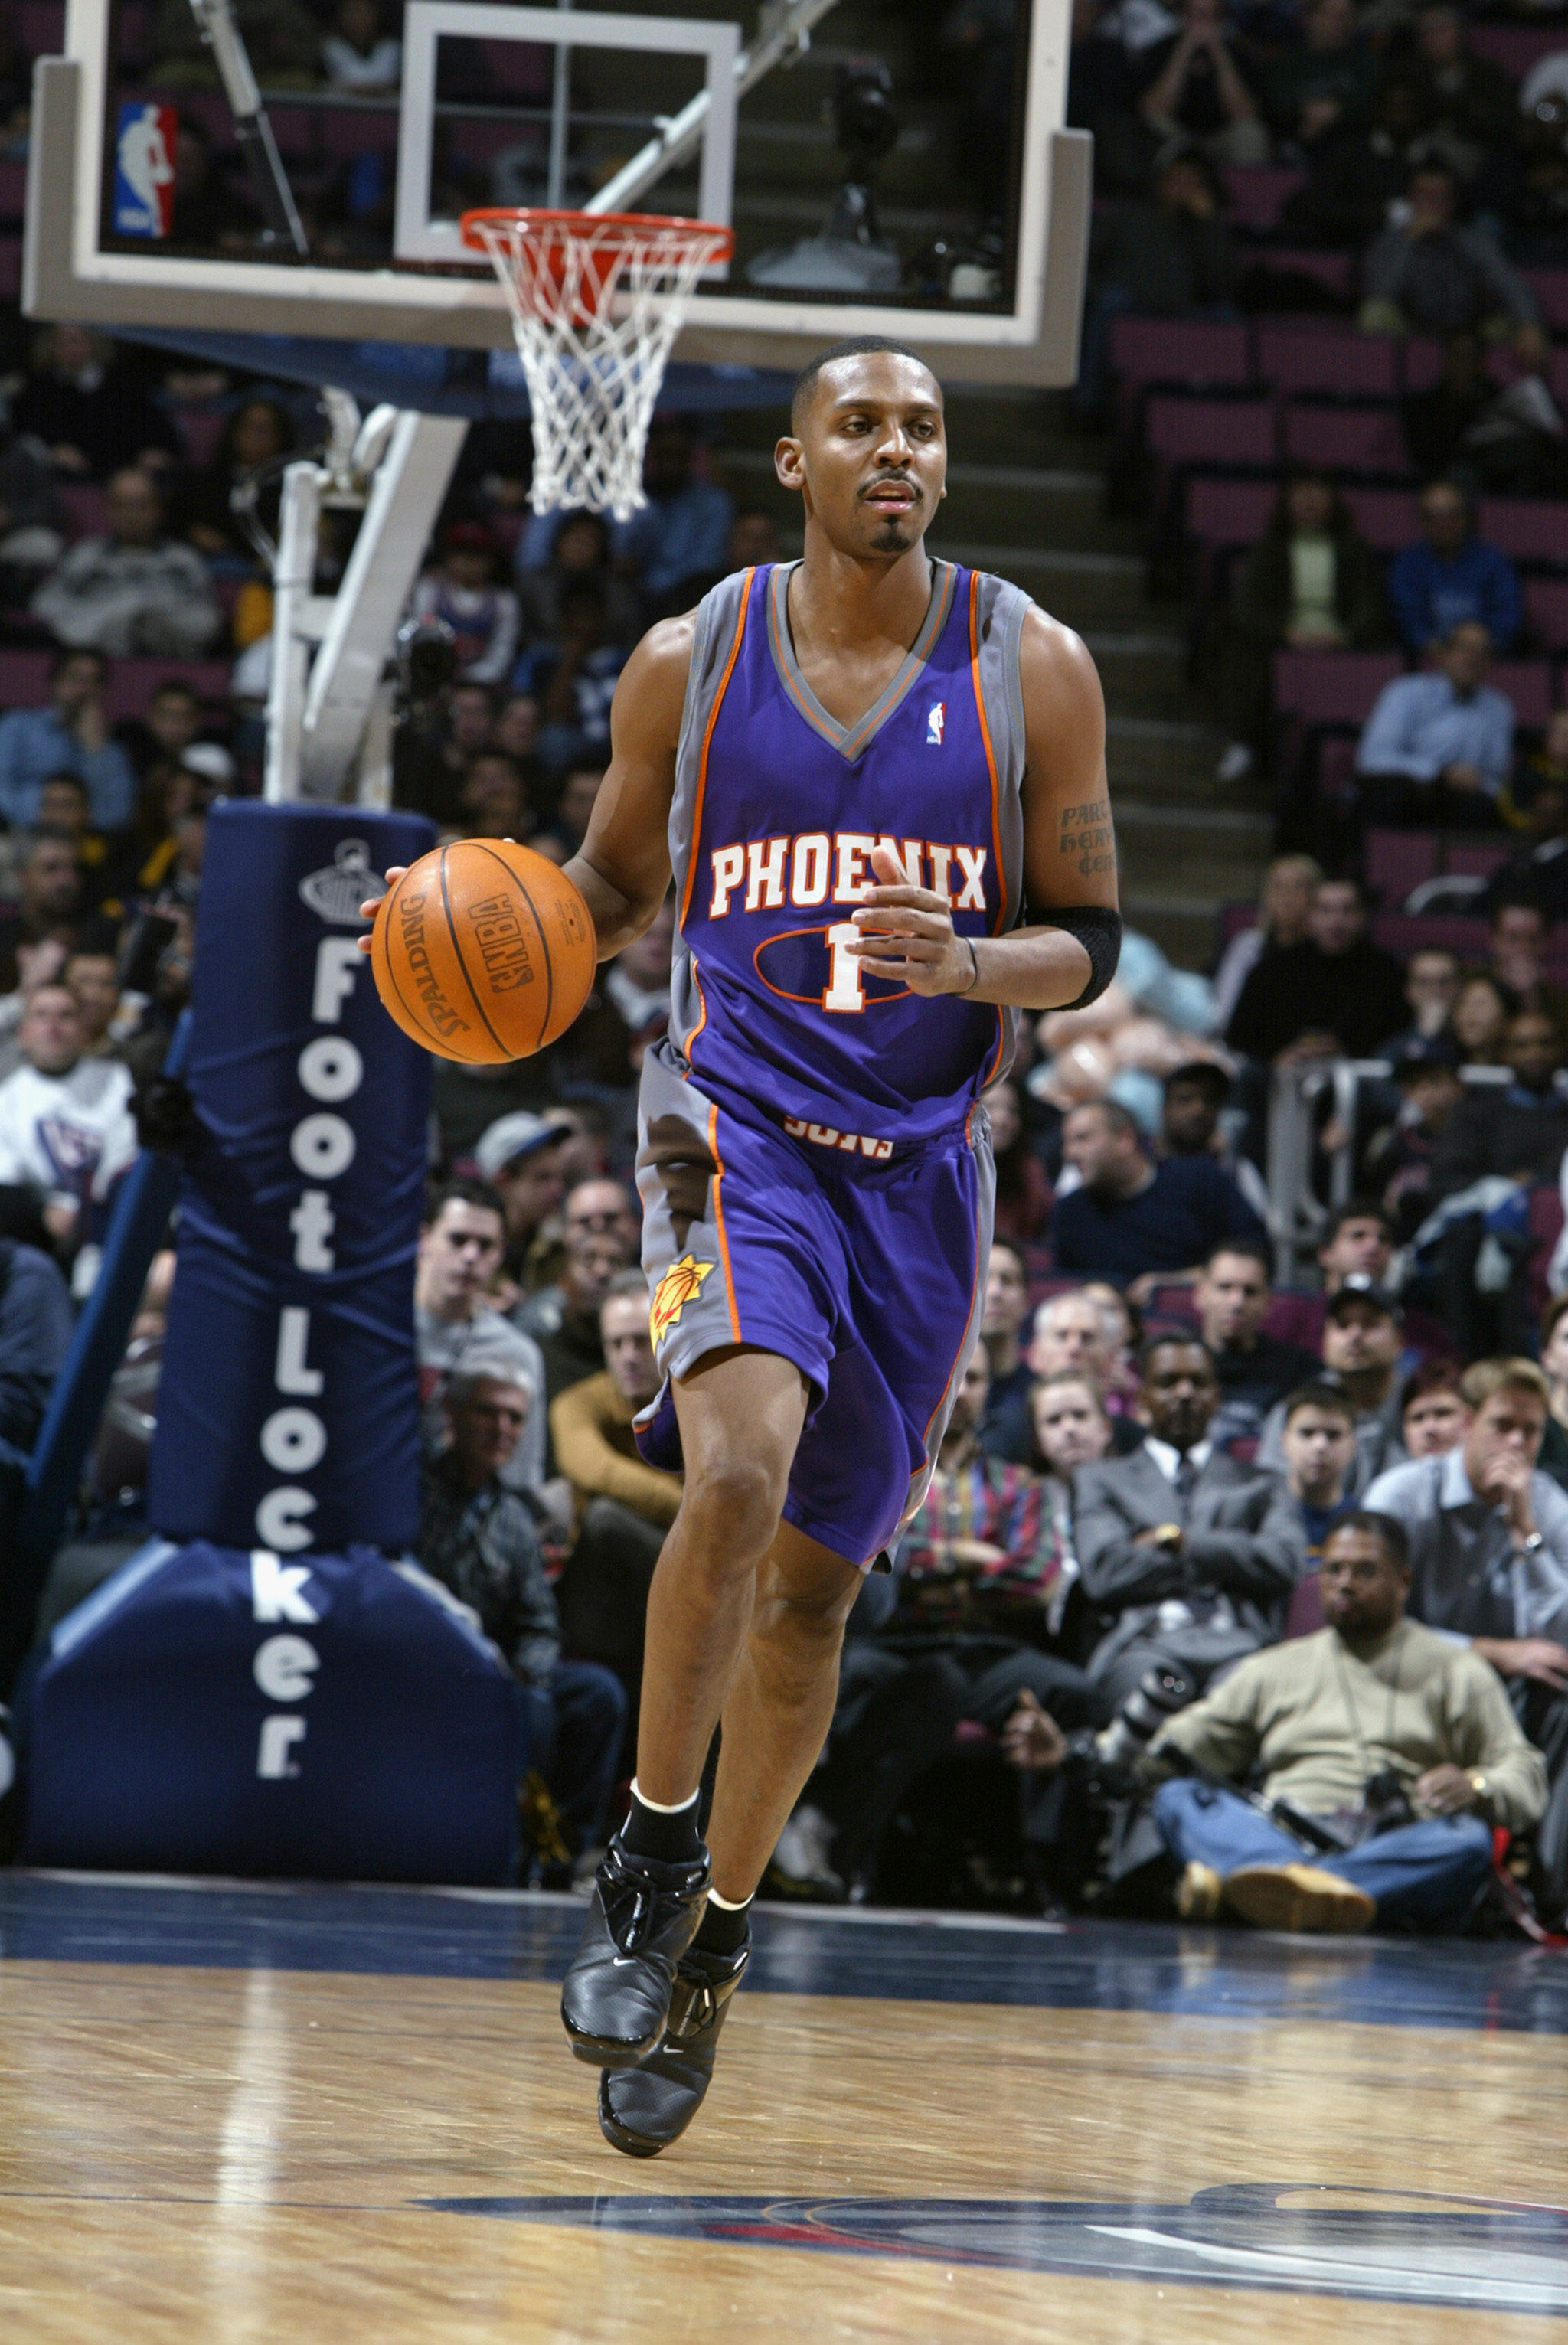 EAST RUTHERFORD, NJ - DECEMBER 9:  Guard Anfernee Hardaway #1 of the Phoenix Suns dribbles the ball up the floor against the New Jersey Nets during the game at Continental Airlines Arena on December 9, 2002 in East Rutherford, New Jersey.  The Nets won 10